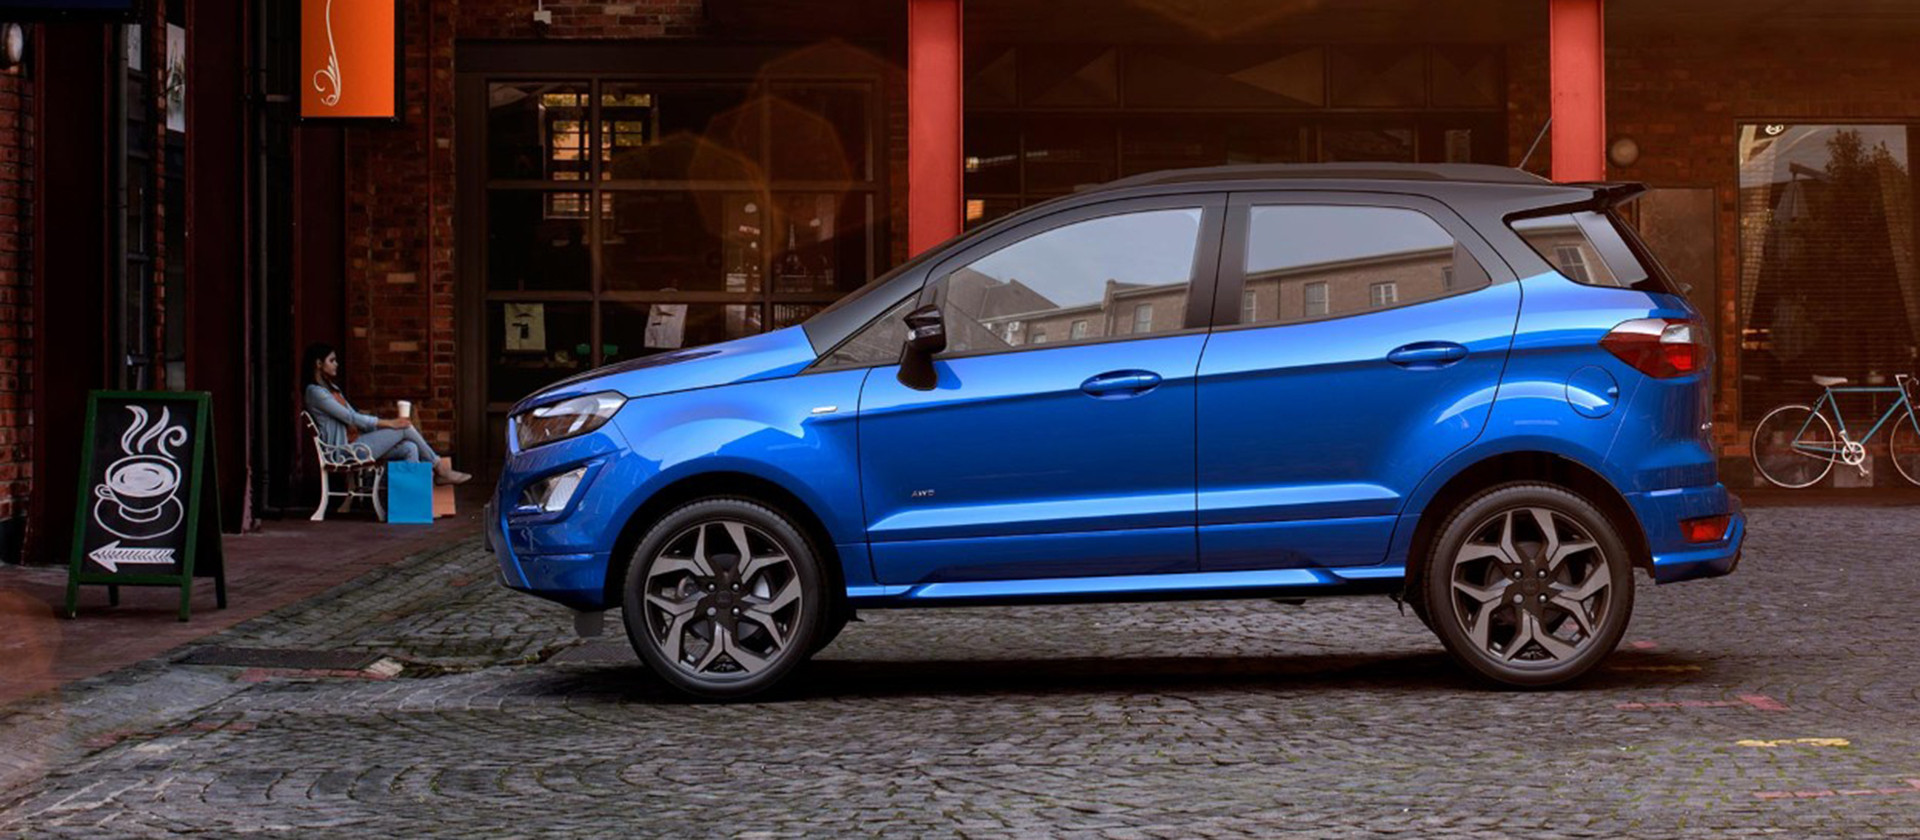 ford-ecosport-eu-s3_foundry_lhd-16x9-2160x1215originalrendition11